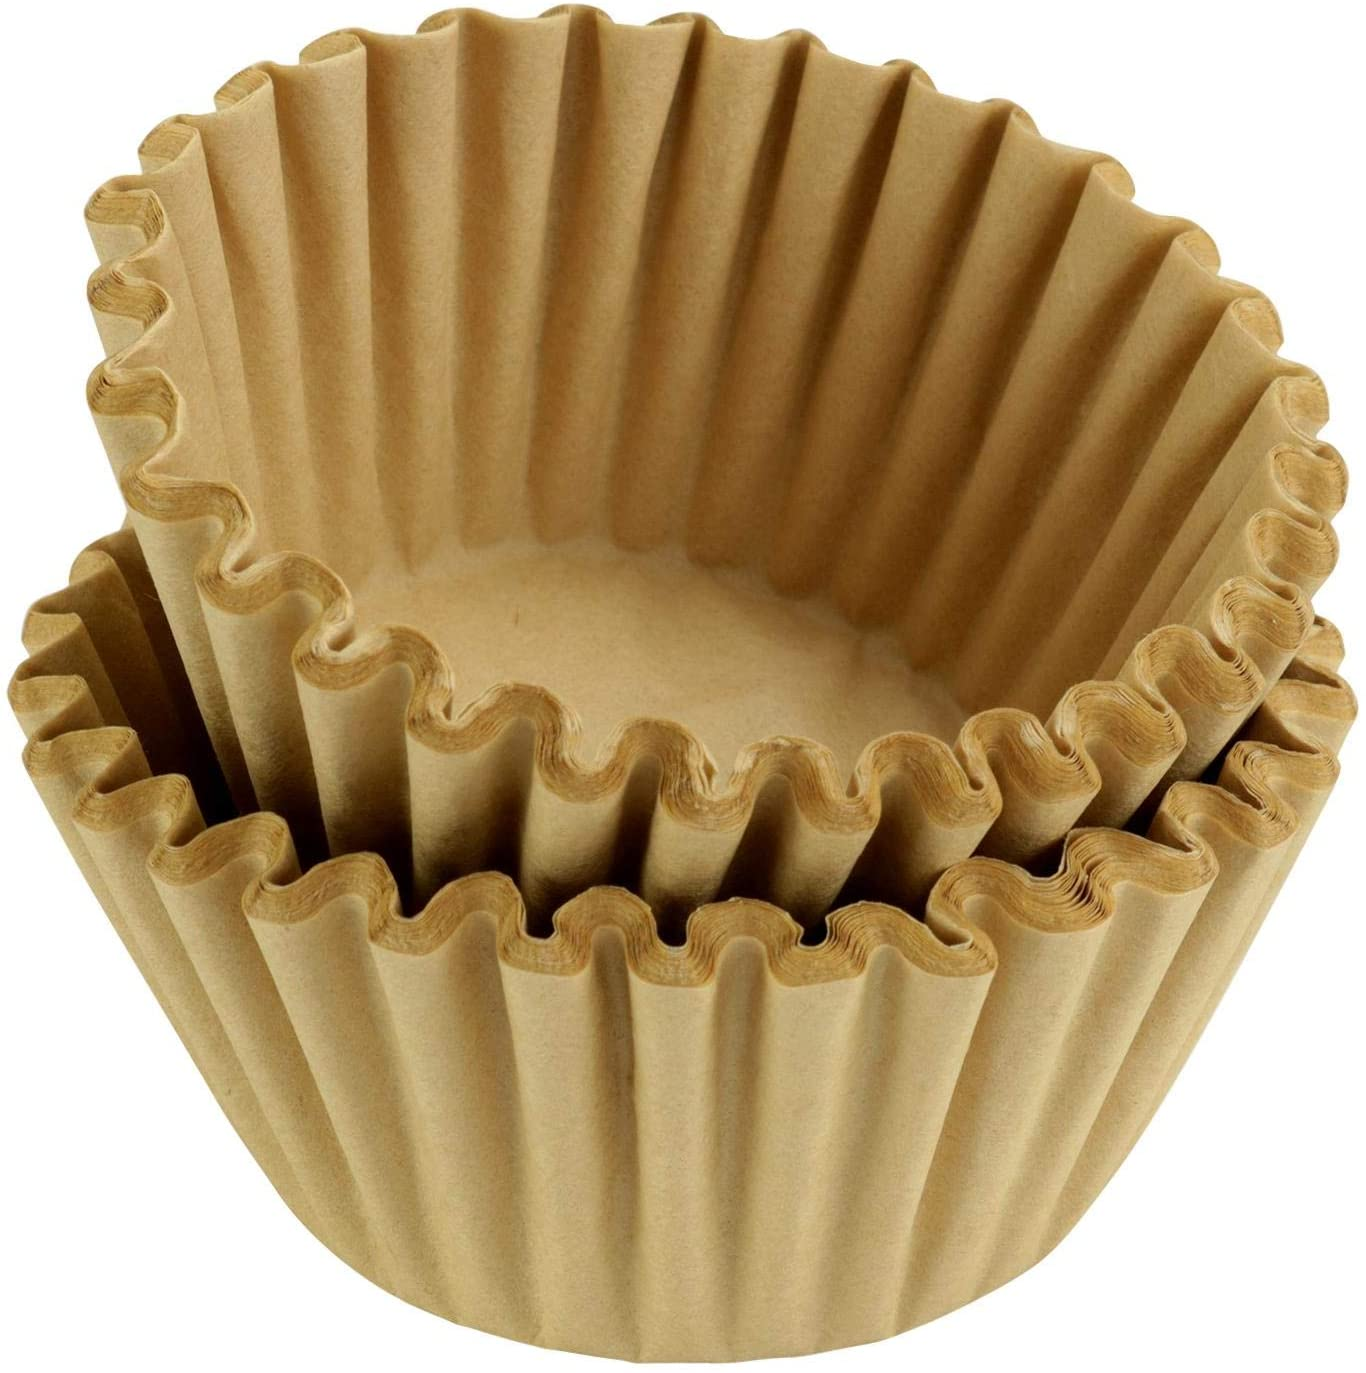 Basket Coffee Filters by Rupert and Jeoffrey's Trading Co.